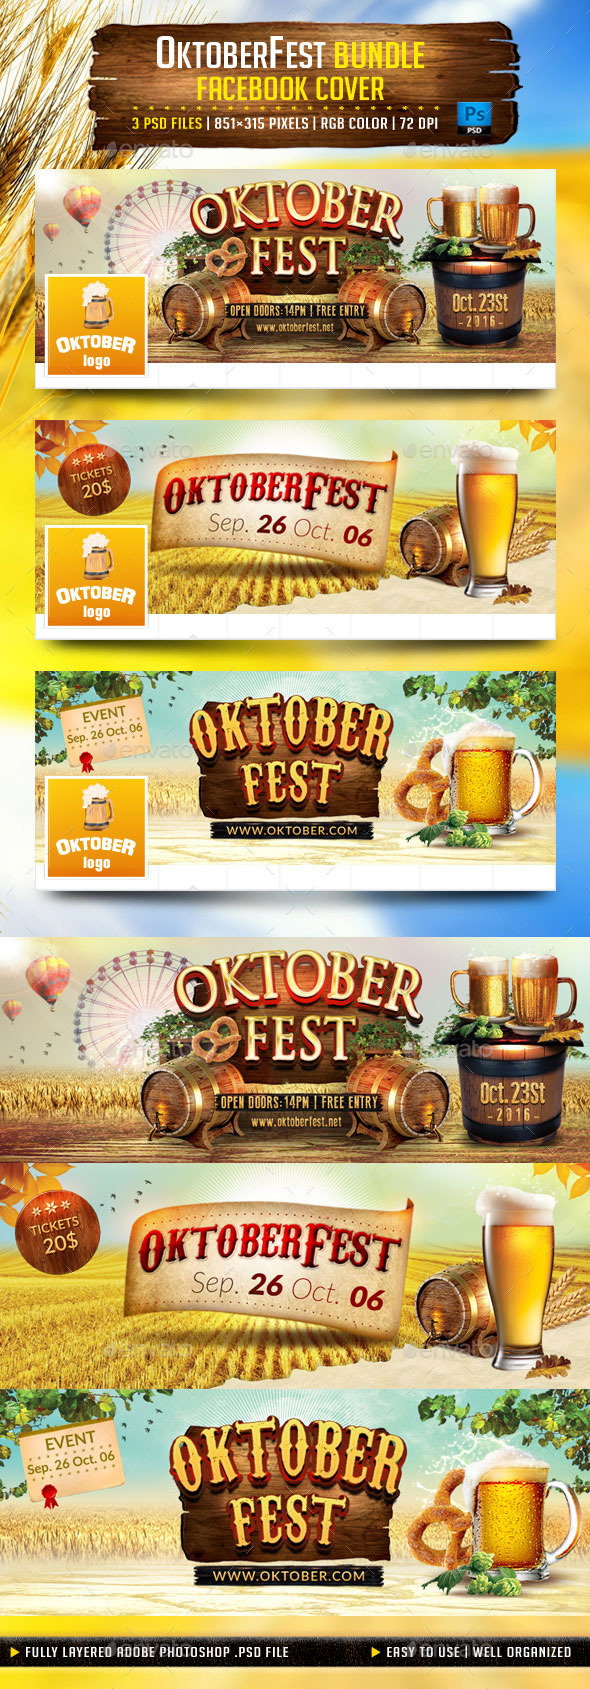 OktoberFest Bundle Facebook Cover - Facebook Timeline Covers Social Media